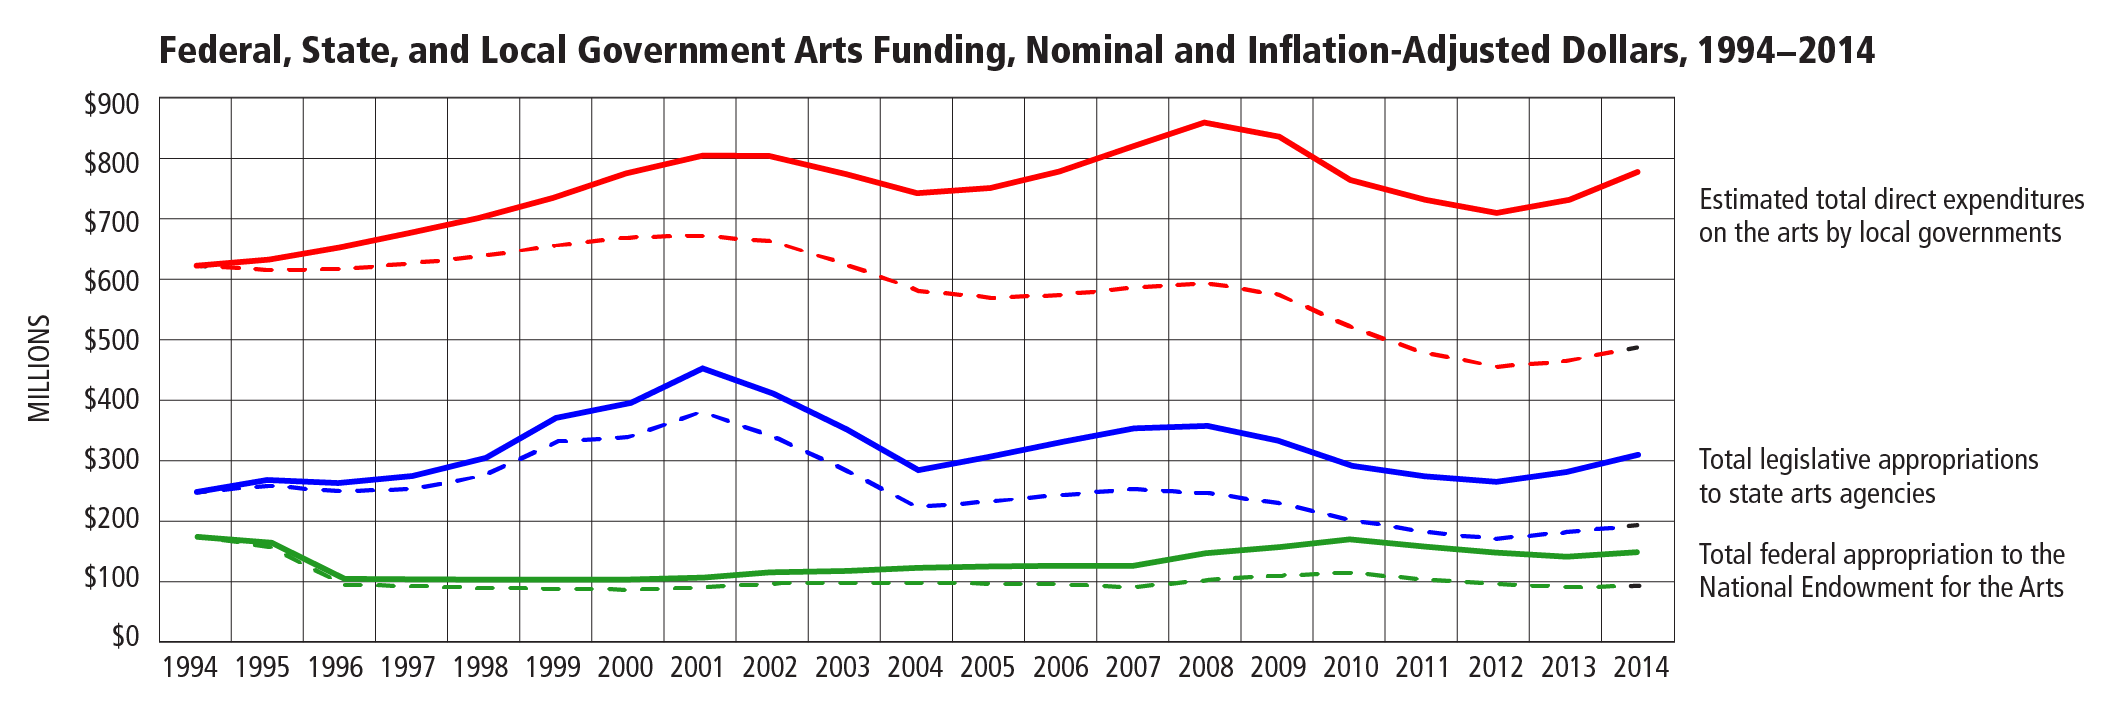 Federal, State, and Local Government Arts Funding, Nominal and Inflation-Adjusted Dollars, 1994−2014